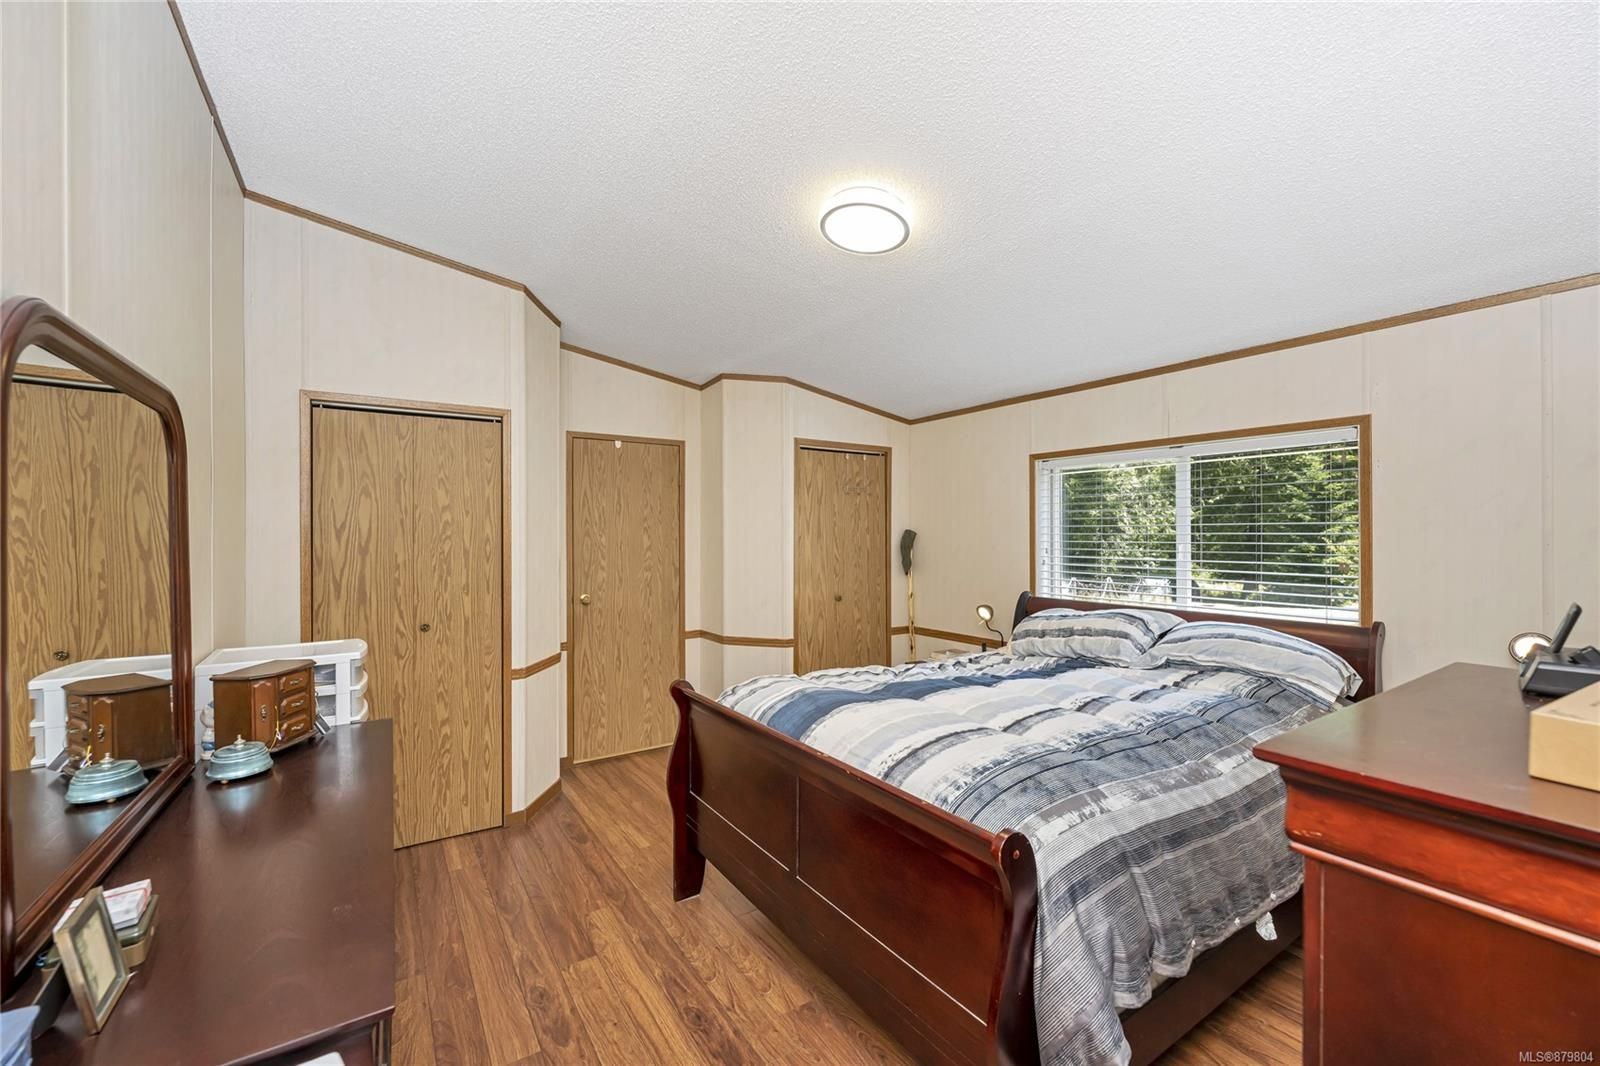 Photo 29: Photos: 3596 Riverside Rd in : ML Cobble Hill Manufactured Home for sale (Malahat & Area)  : MLS®# 879804